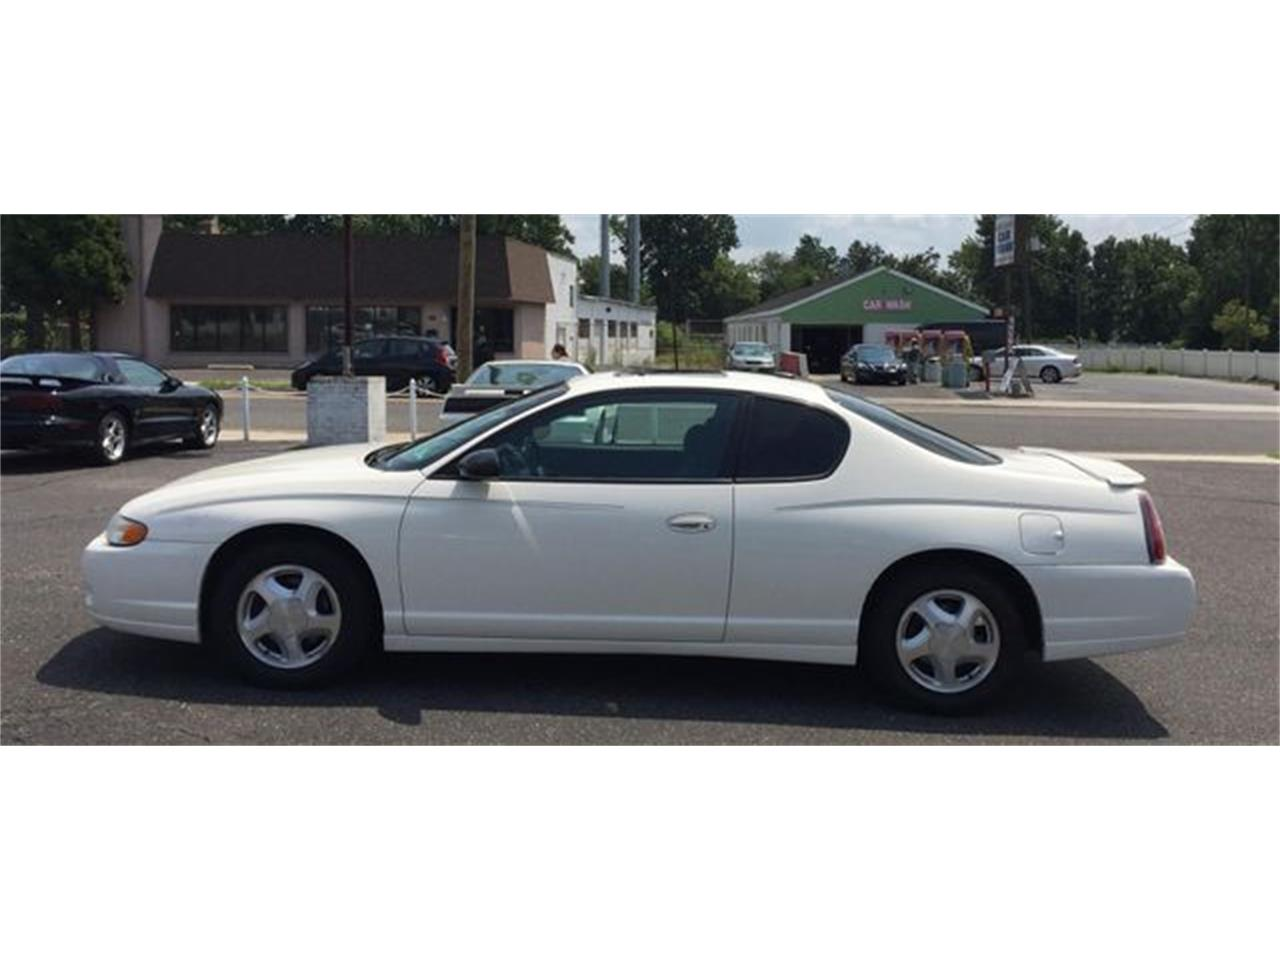 2005 Chevrolet Monte Carlo for sale in Woodbury, NJ – photo 6